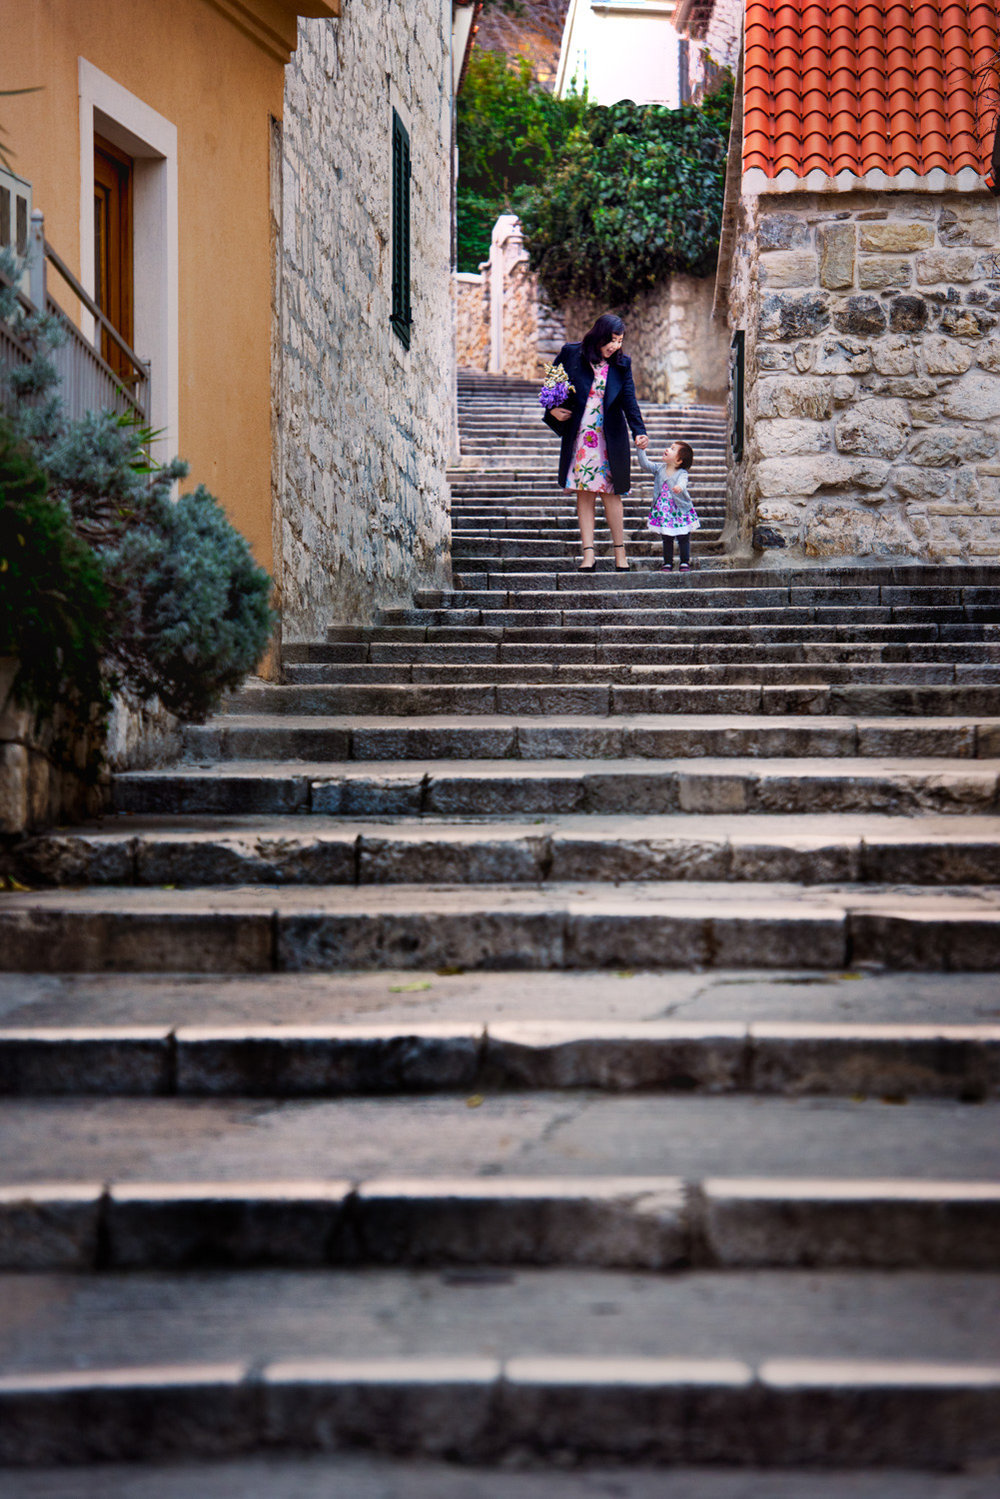 A giant flight of stairs in Split, Croatia.